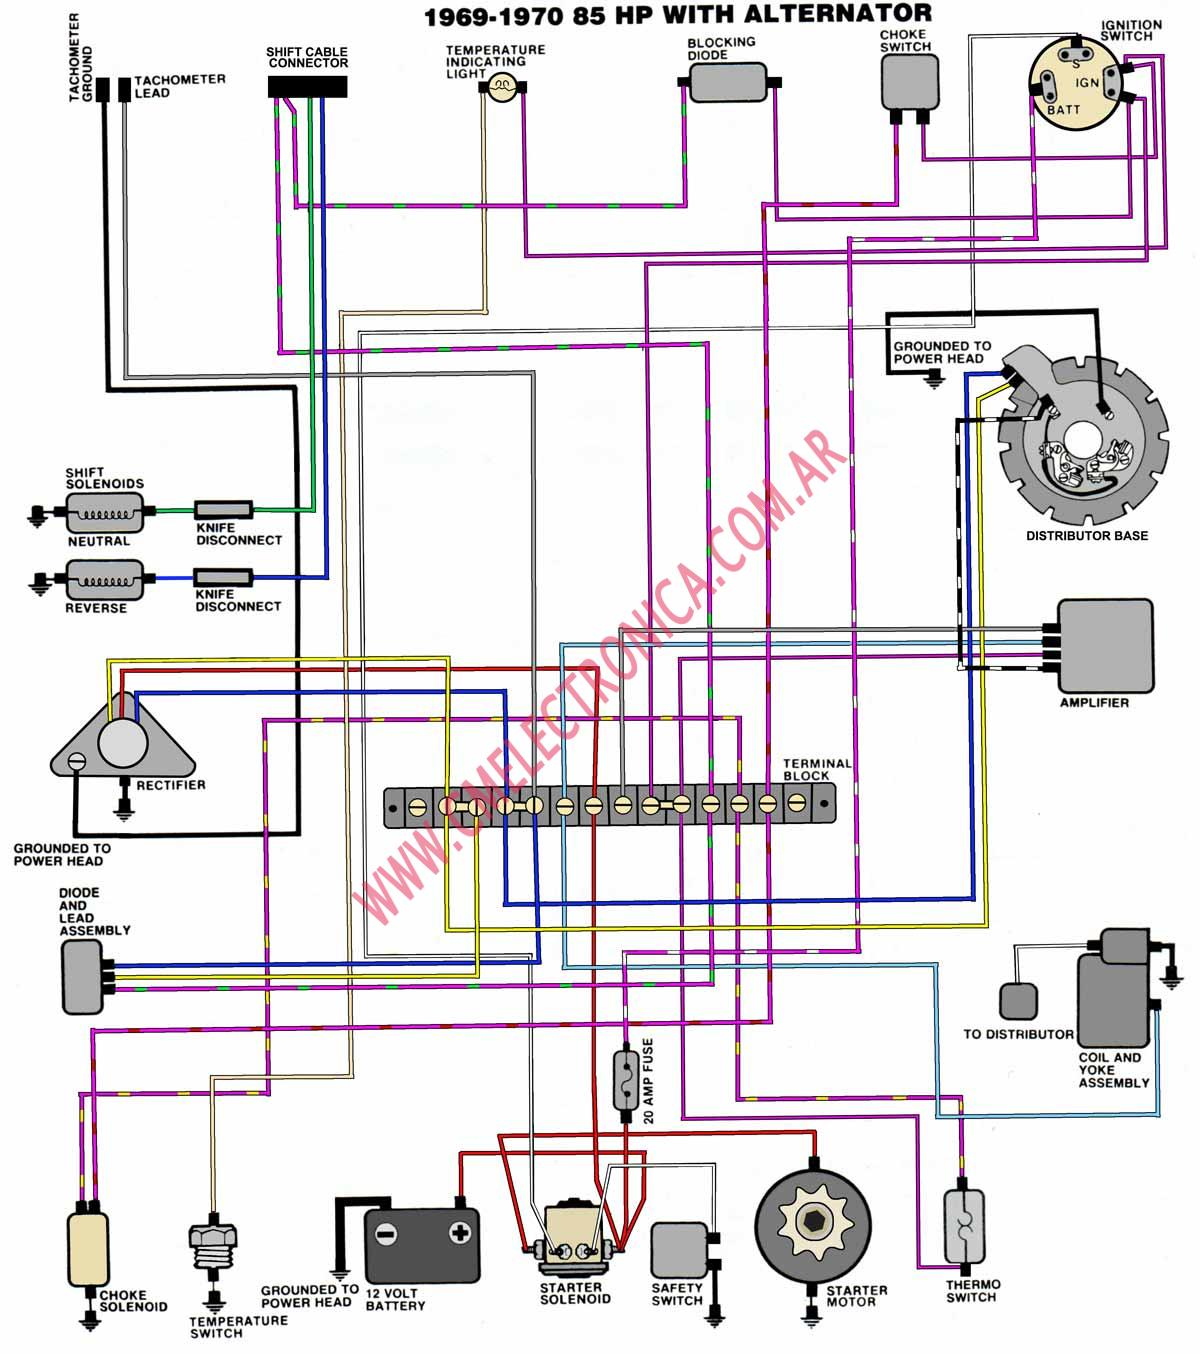 suzuki 140 hp outboard wiring diagram. suzuki. free wiring diagrams, Wiring diagram